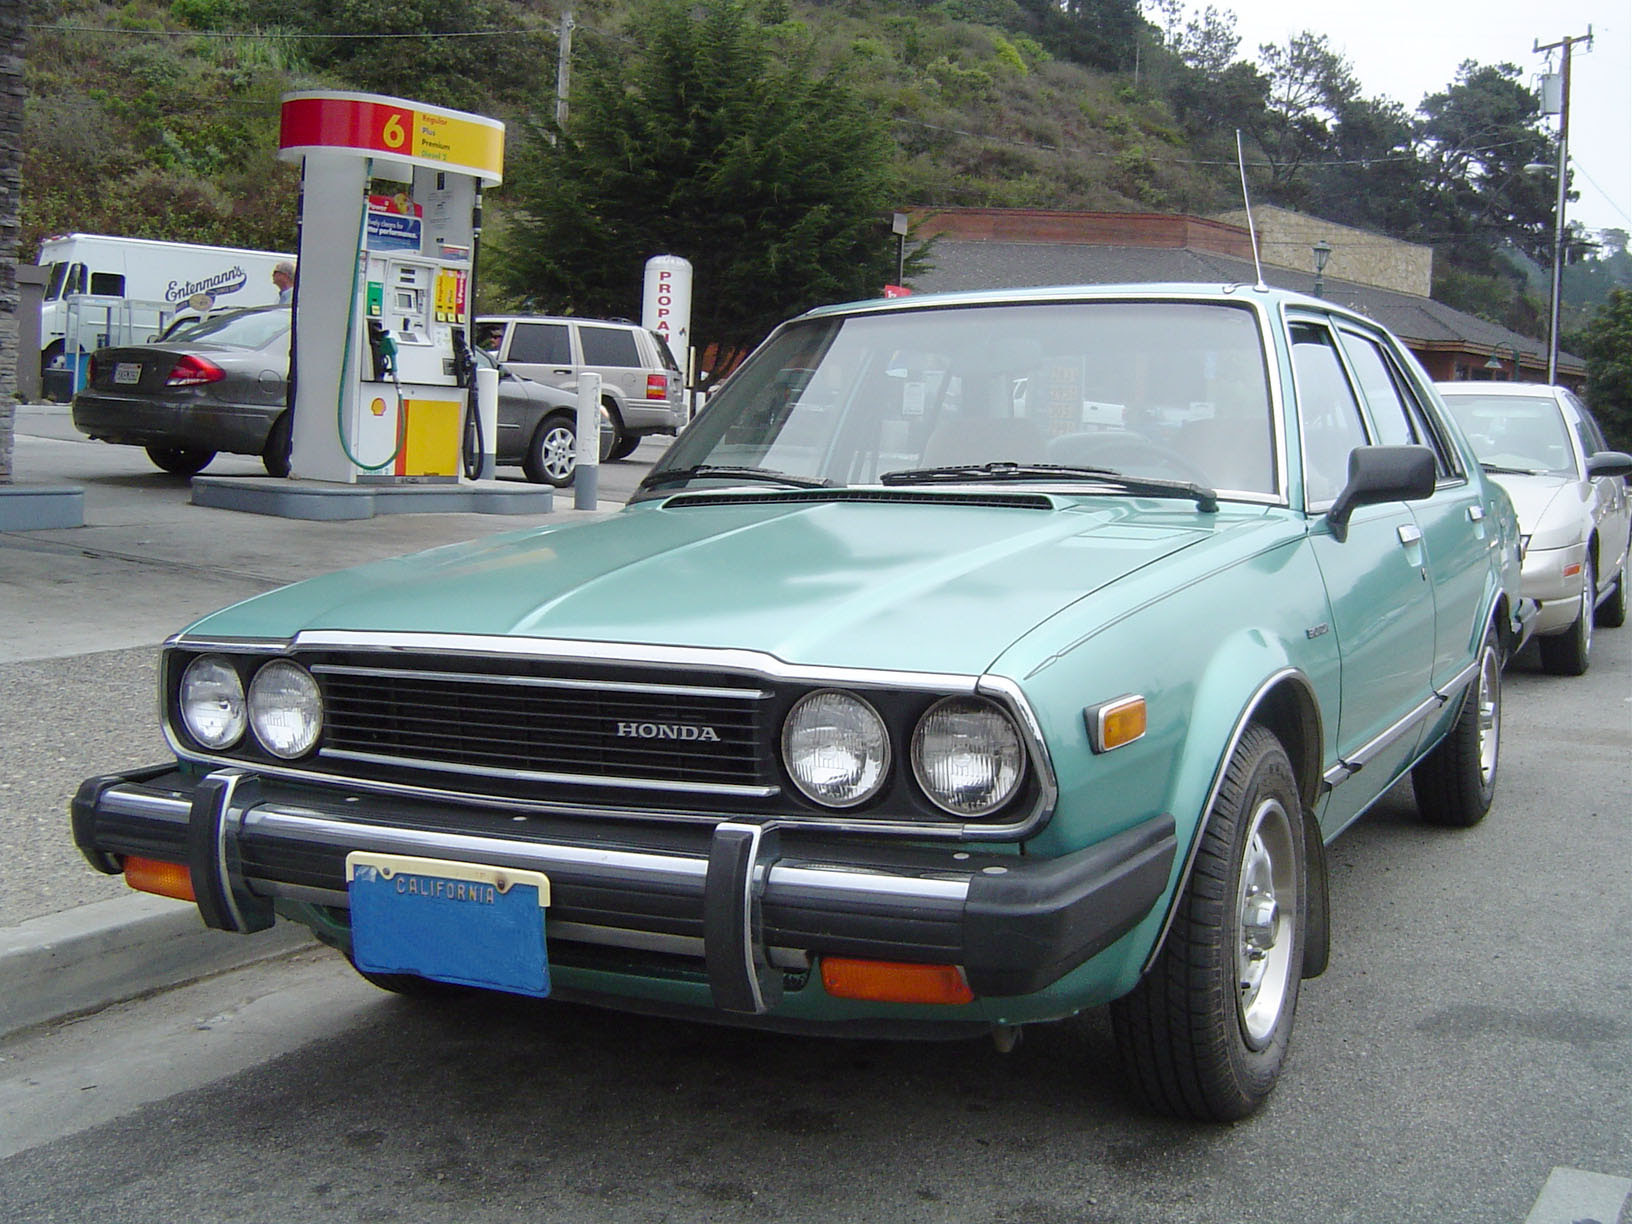 1980 Honda Accord Information And Photos MOMENTcar